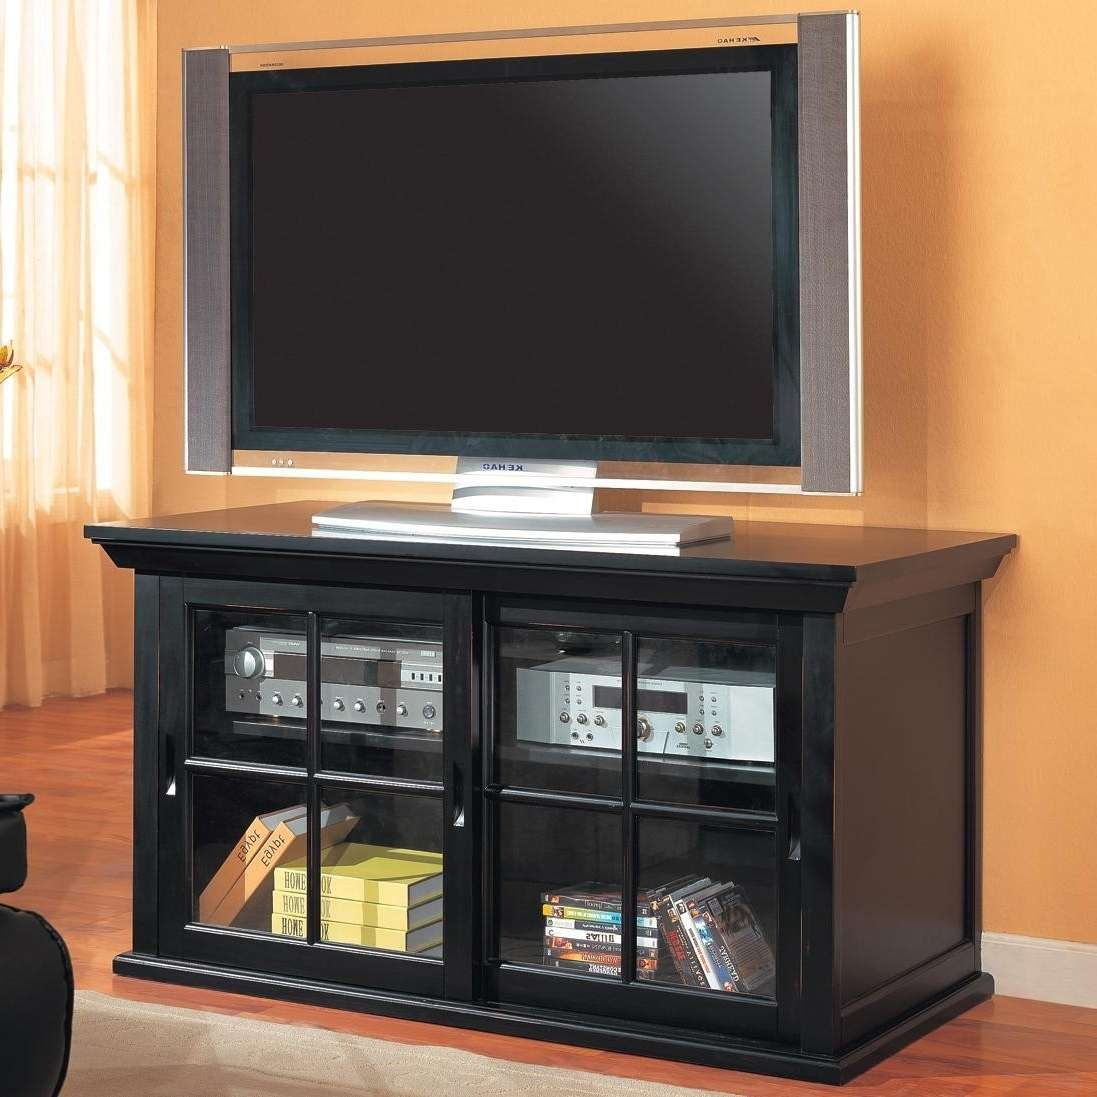 Small Tv Cabinet With Glass Doors • Cabinet Doors | Best Home Throughout Glass Tv Cabinets With Doors (View 7 of 20)